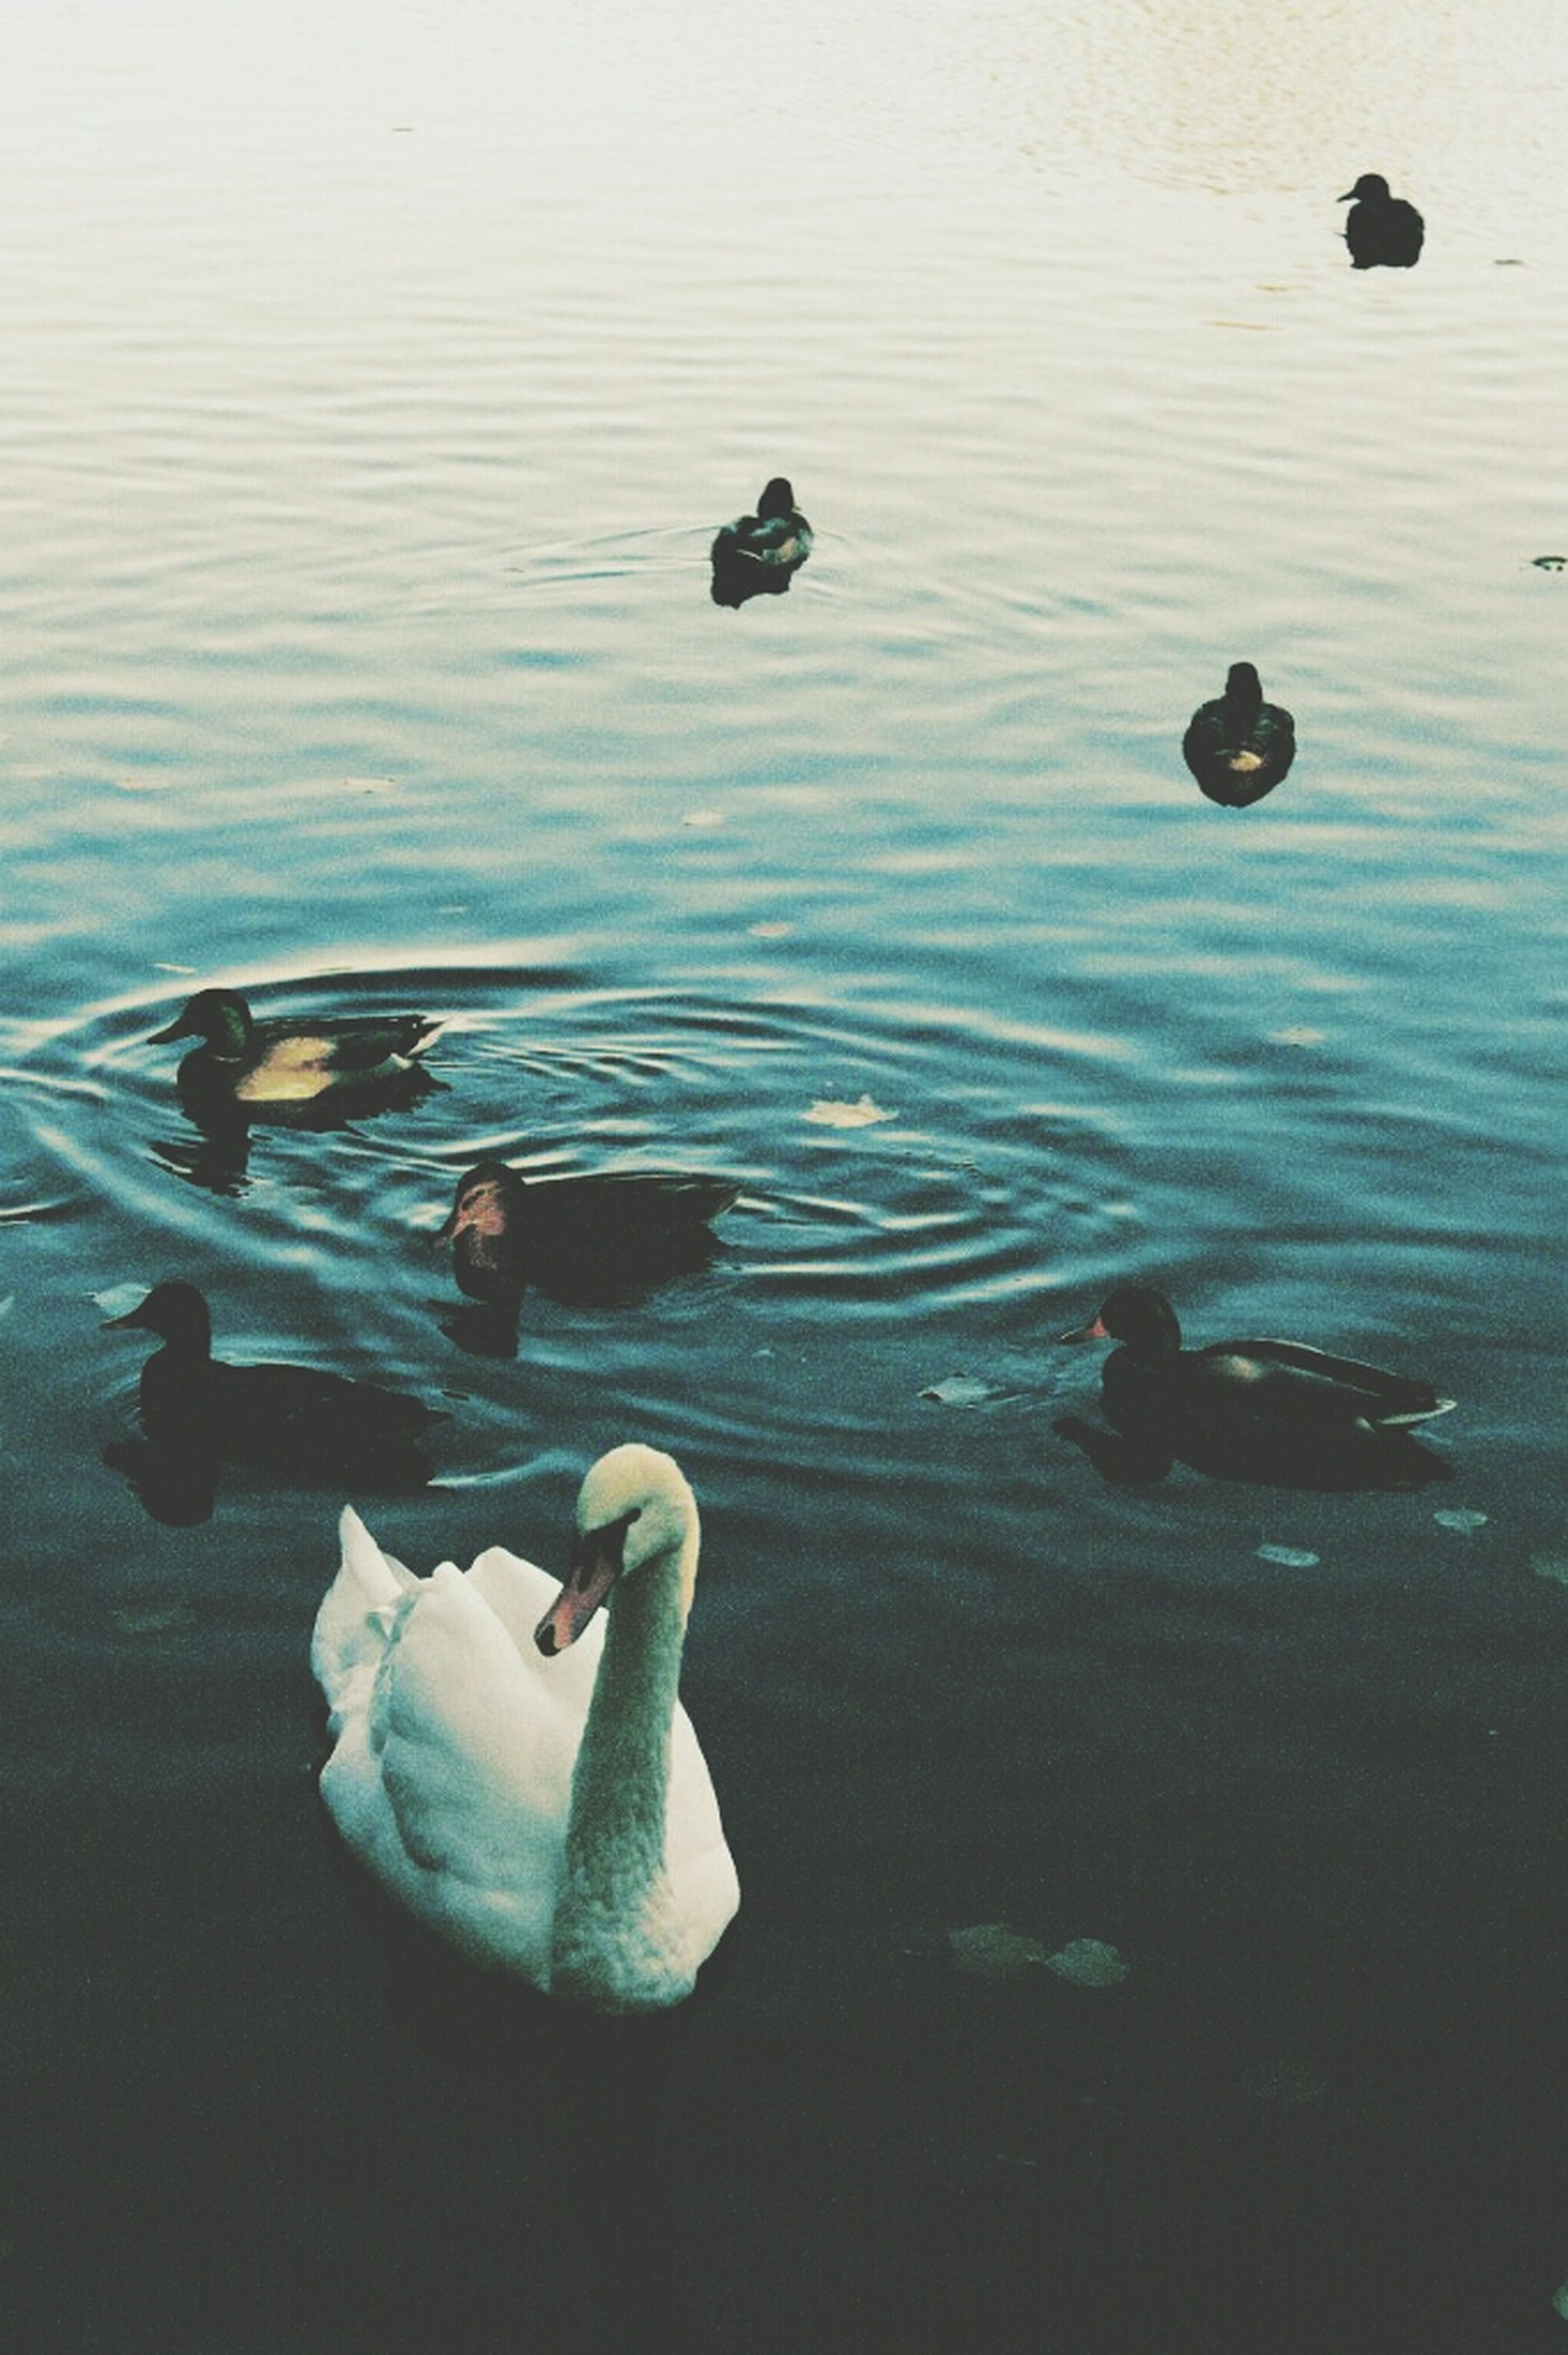 water, bird, lake, swimming, swan, animal themes, reflection, wildlife, waterfront, floating on water, animals in the wild, rippled, high angle view, nature, duck, tranquility, water bird, beauty in nature, outdoors, no people